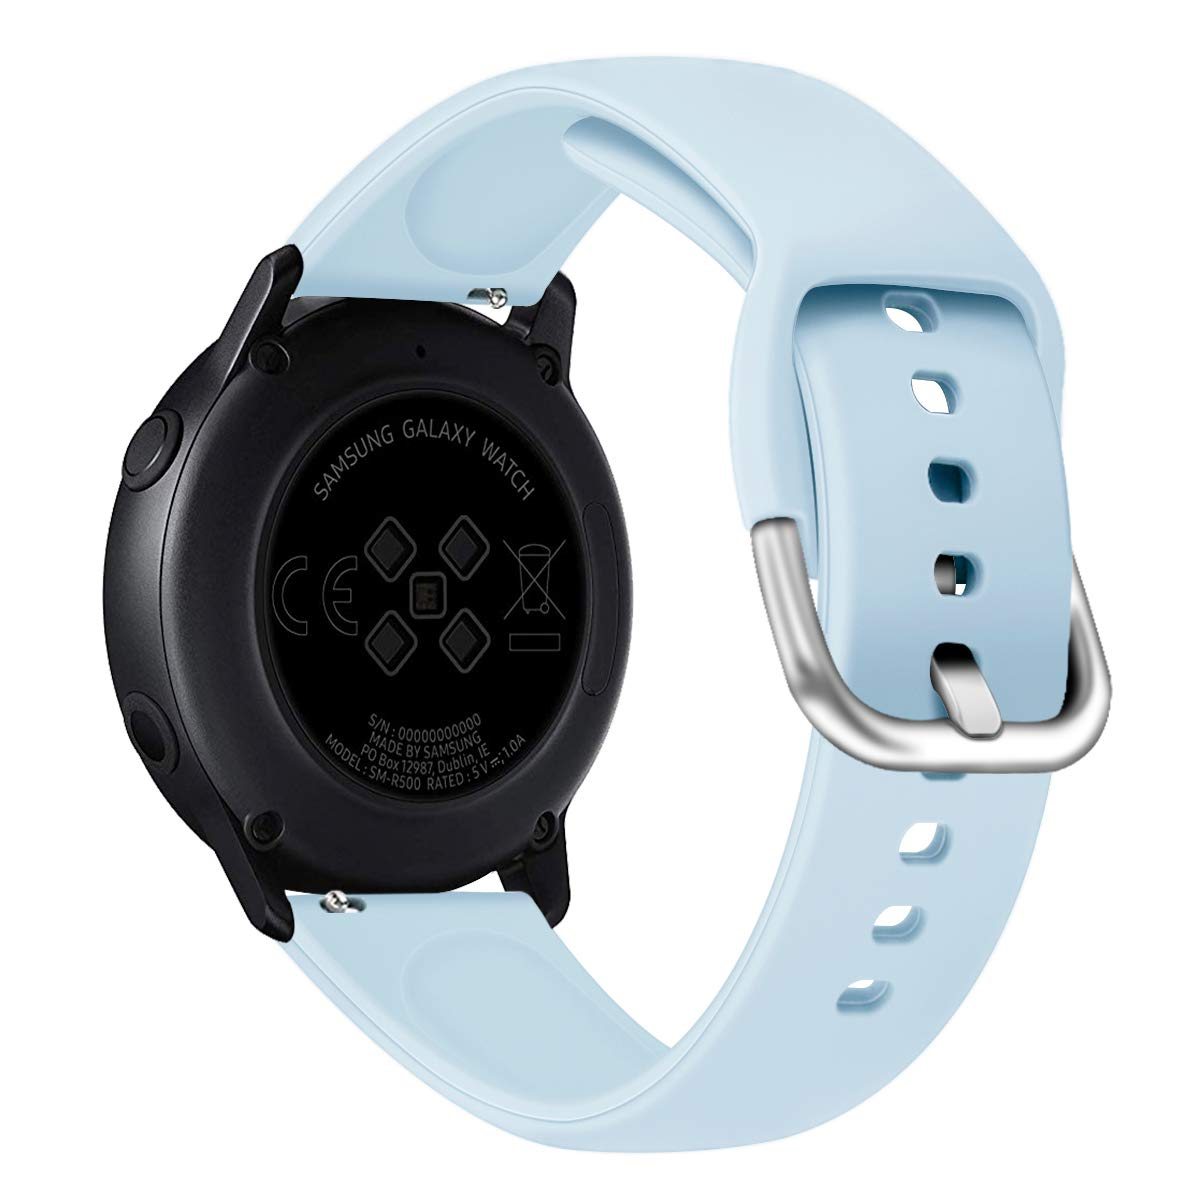 Amazon.com: Fit for Samsung Galaxy Active Watch 40mm Watch ...